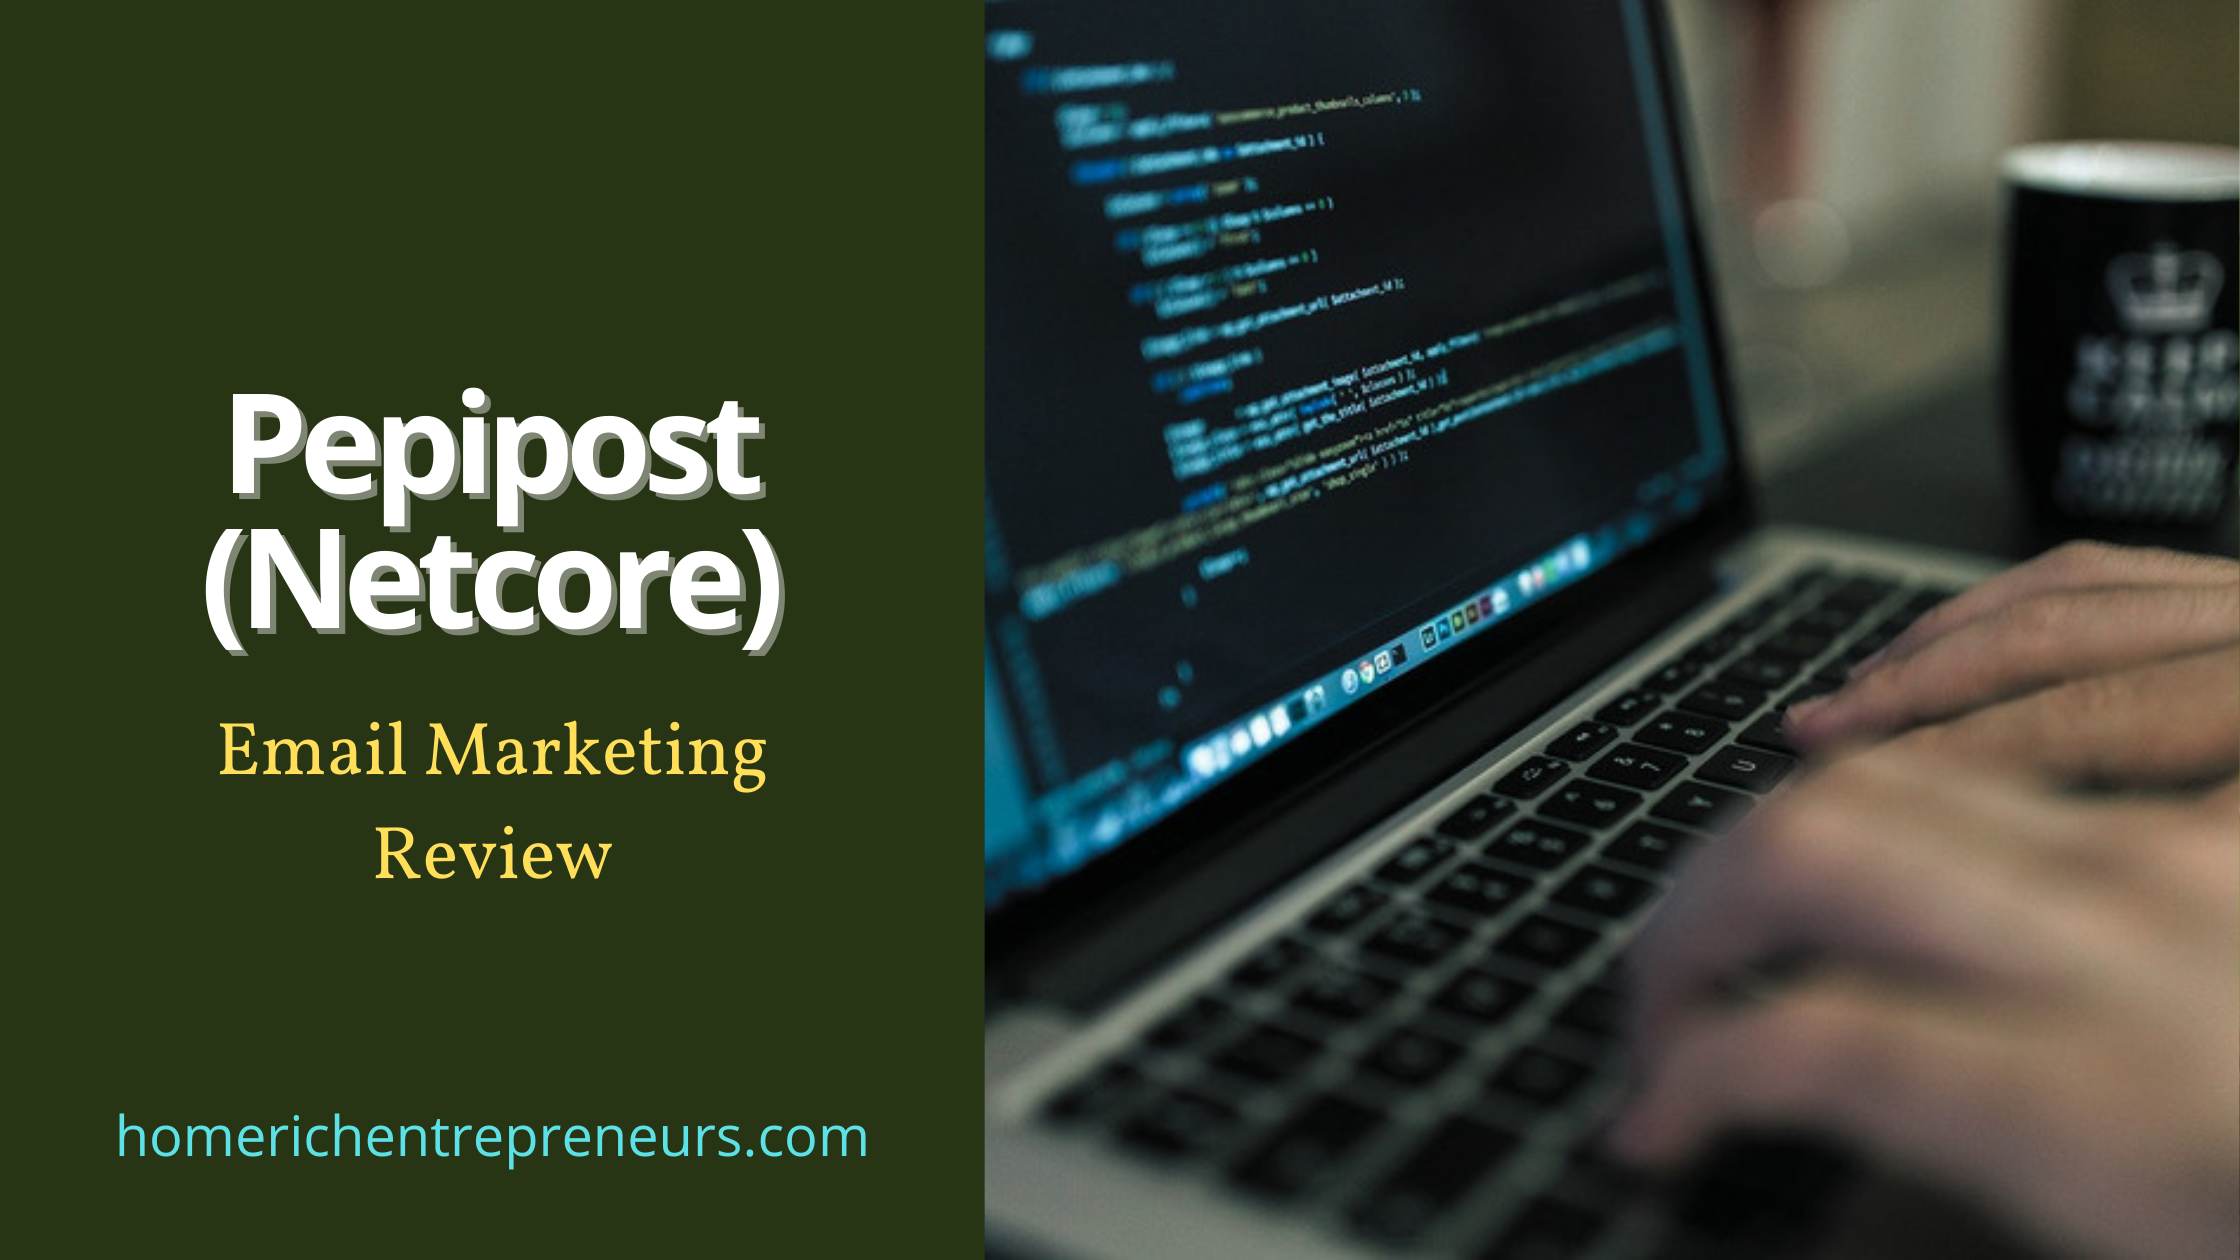 What is Pepipost